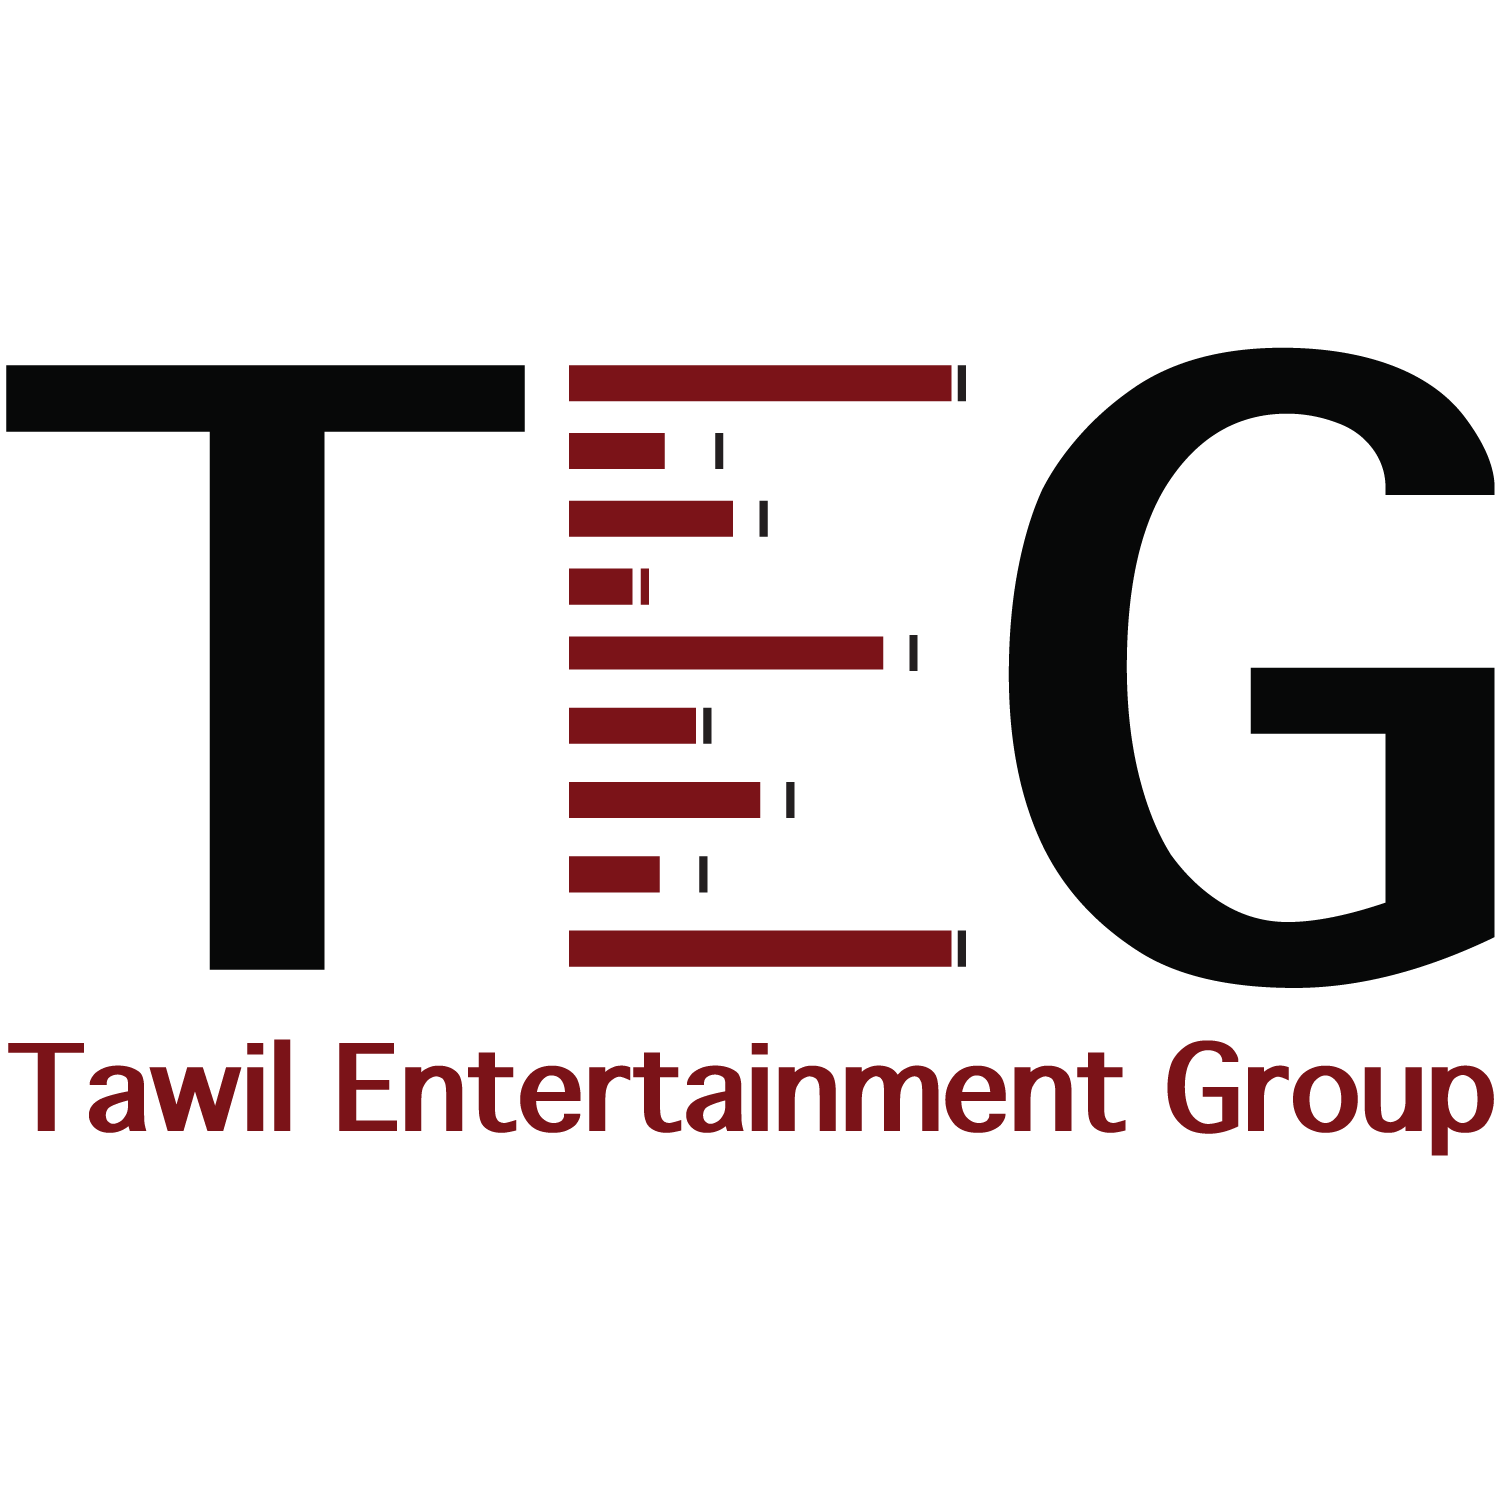 gg companies_tawil ent